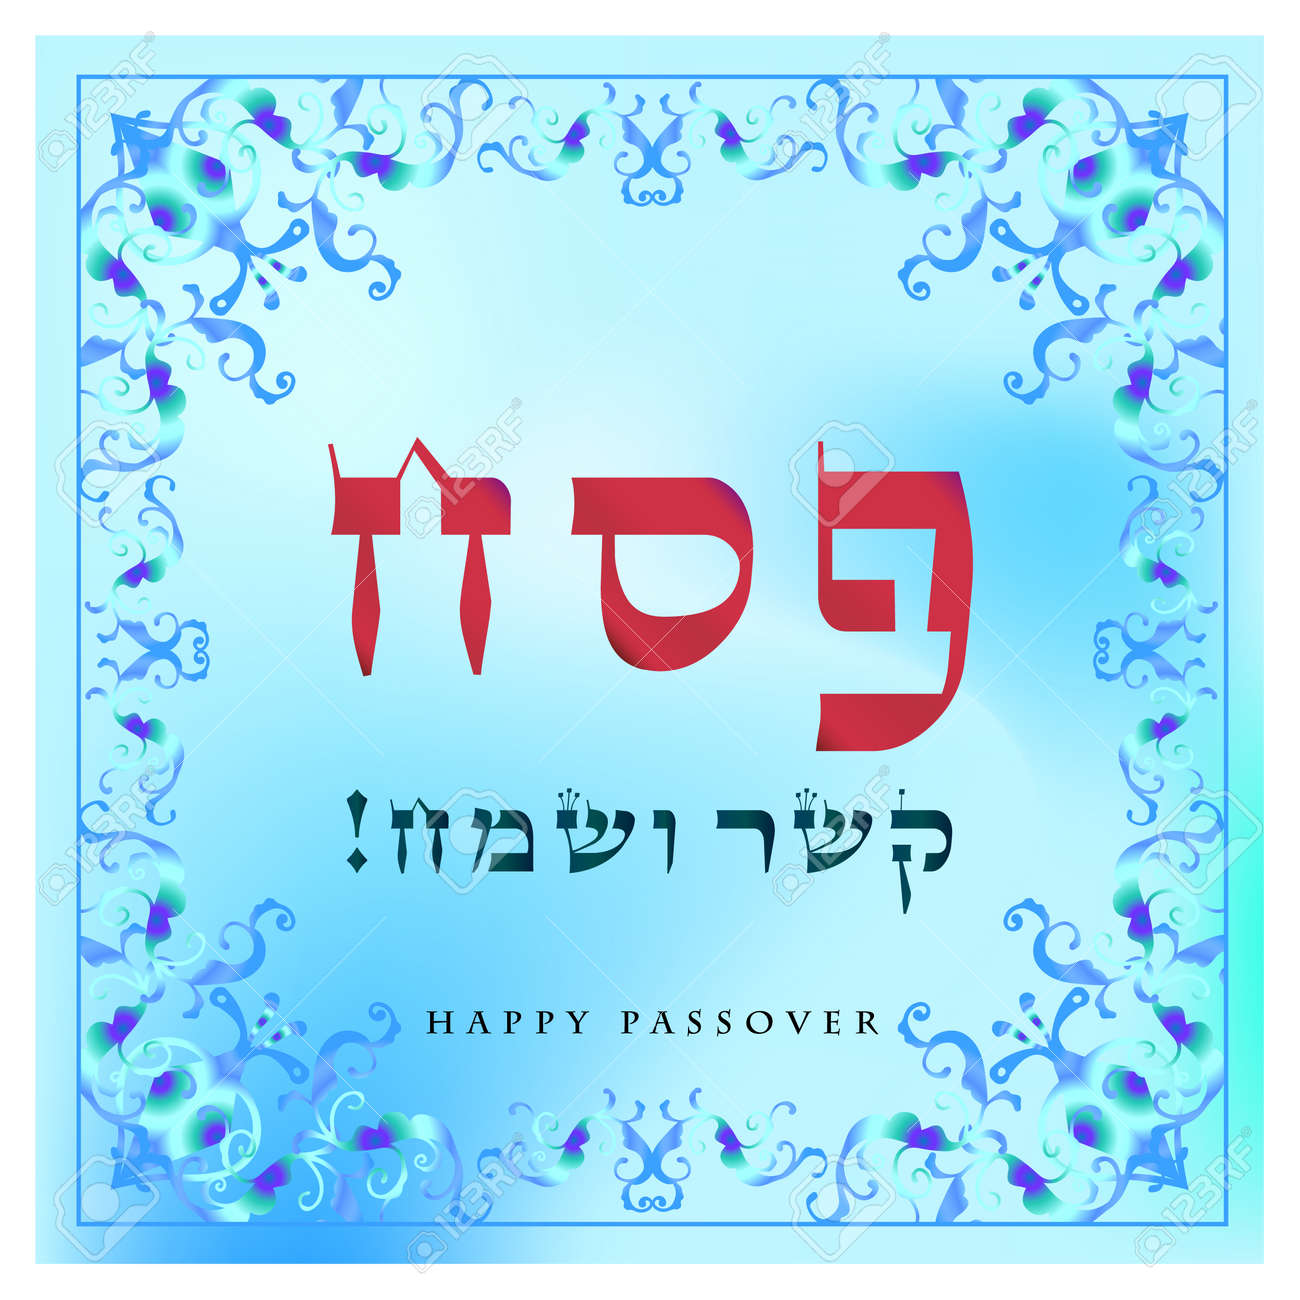 Happy passover jewish holiday greeting card with lettering and happy passover jewish holiday greeting card with lettering and vintage frame stock vector 93820980 m4hsunfo